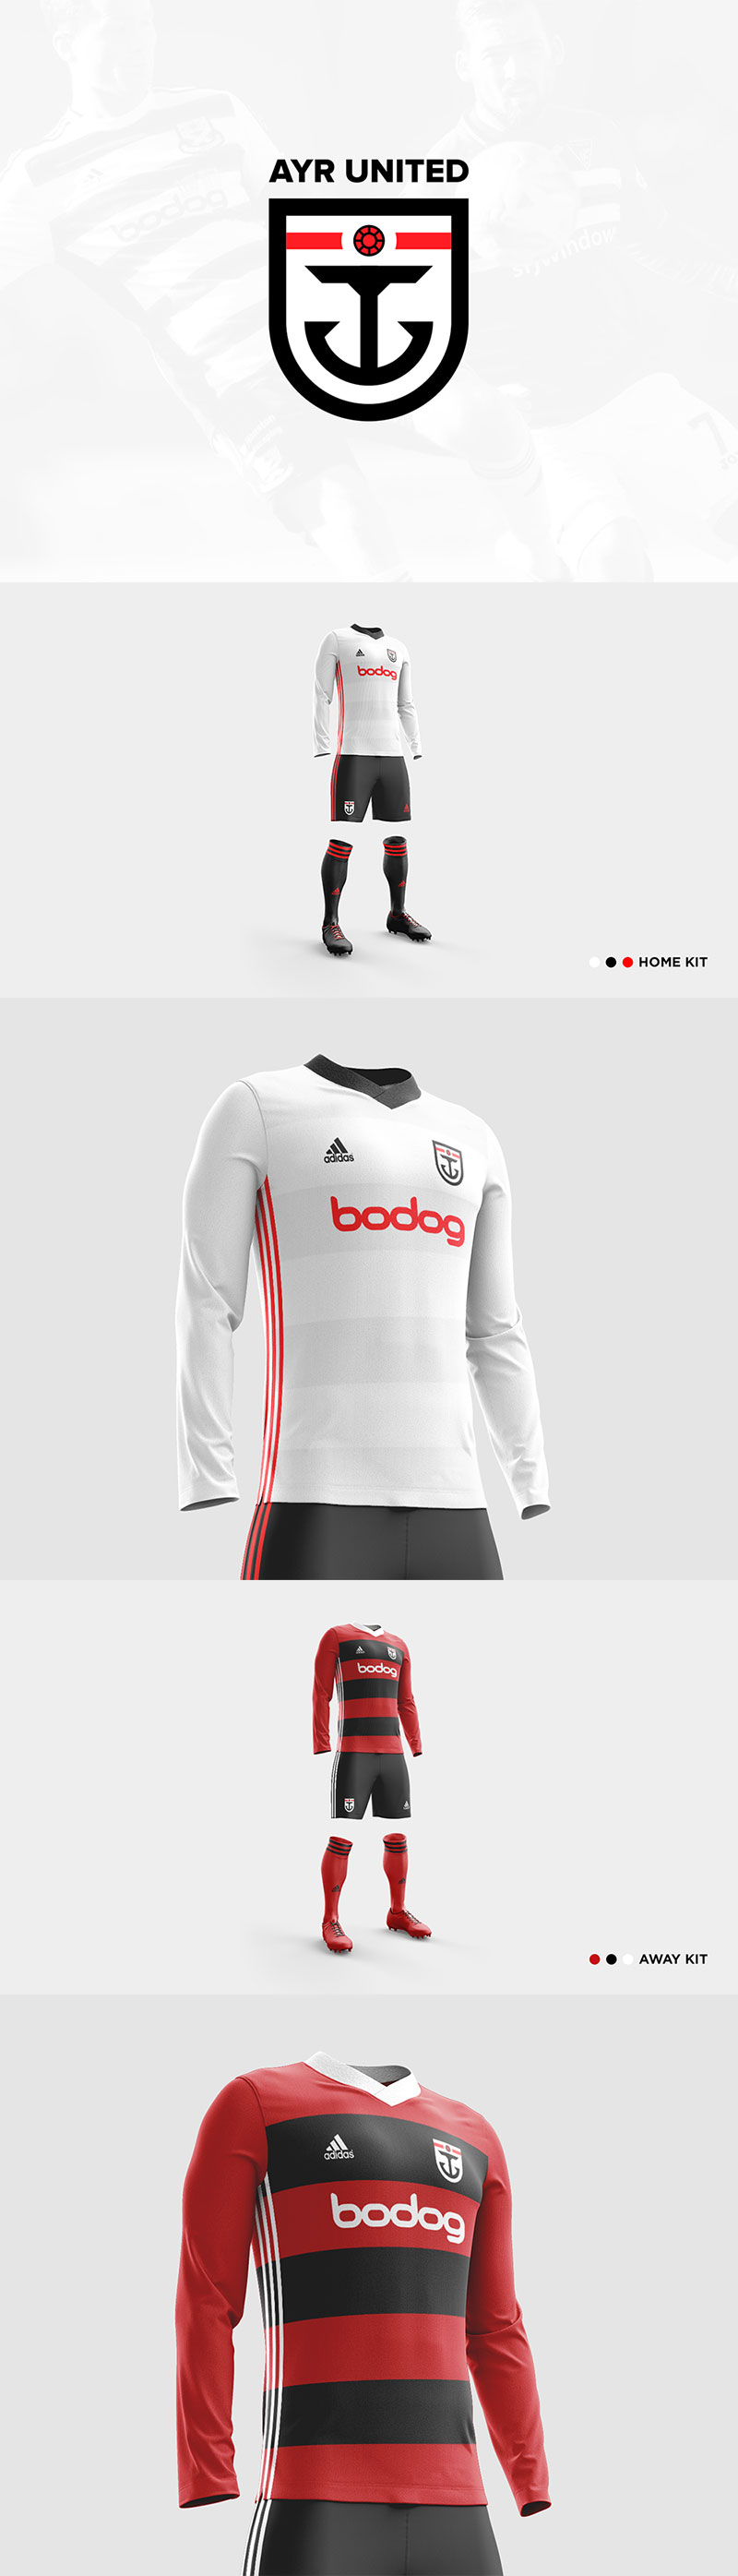 Football Club Brand Designs: Ayr United FC Redesign Concept by Ryan McGinnis